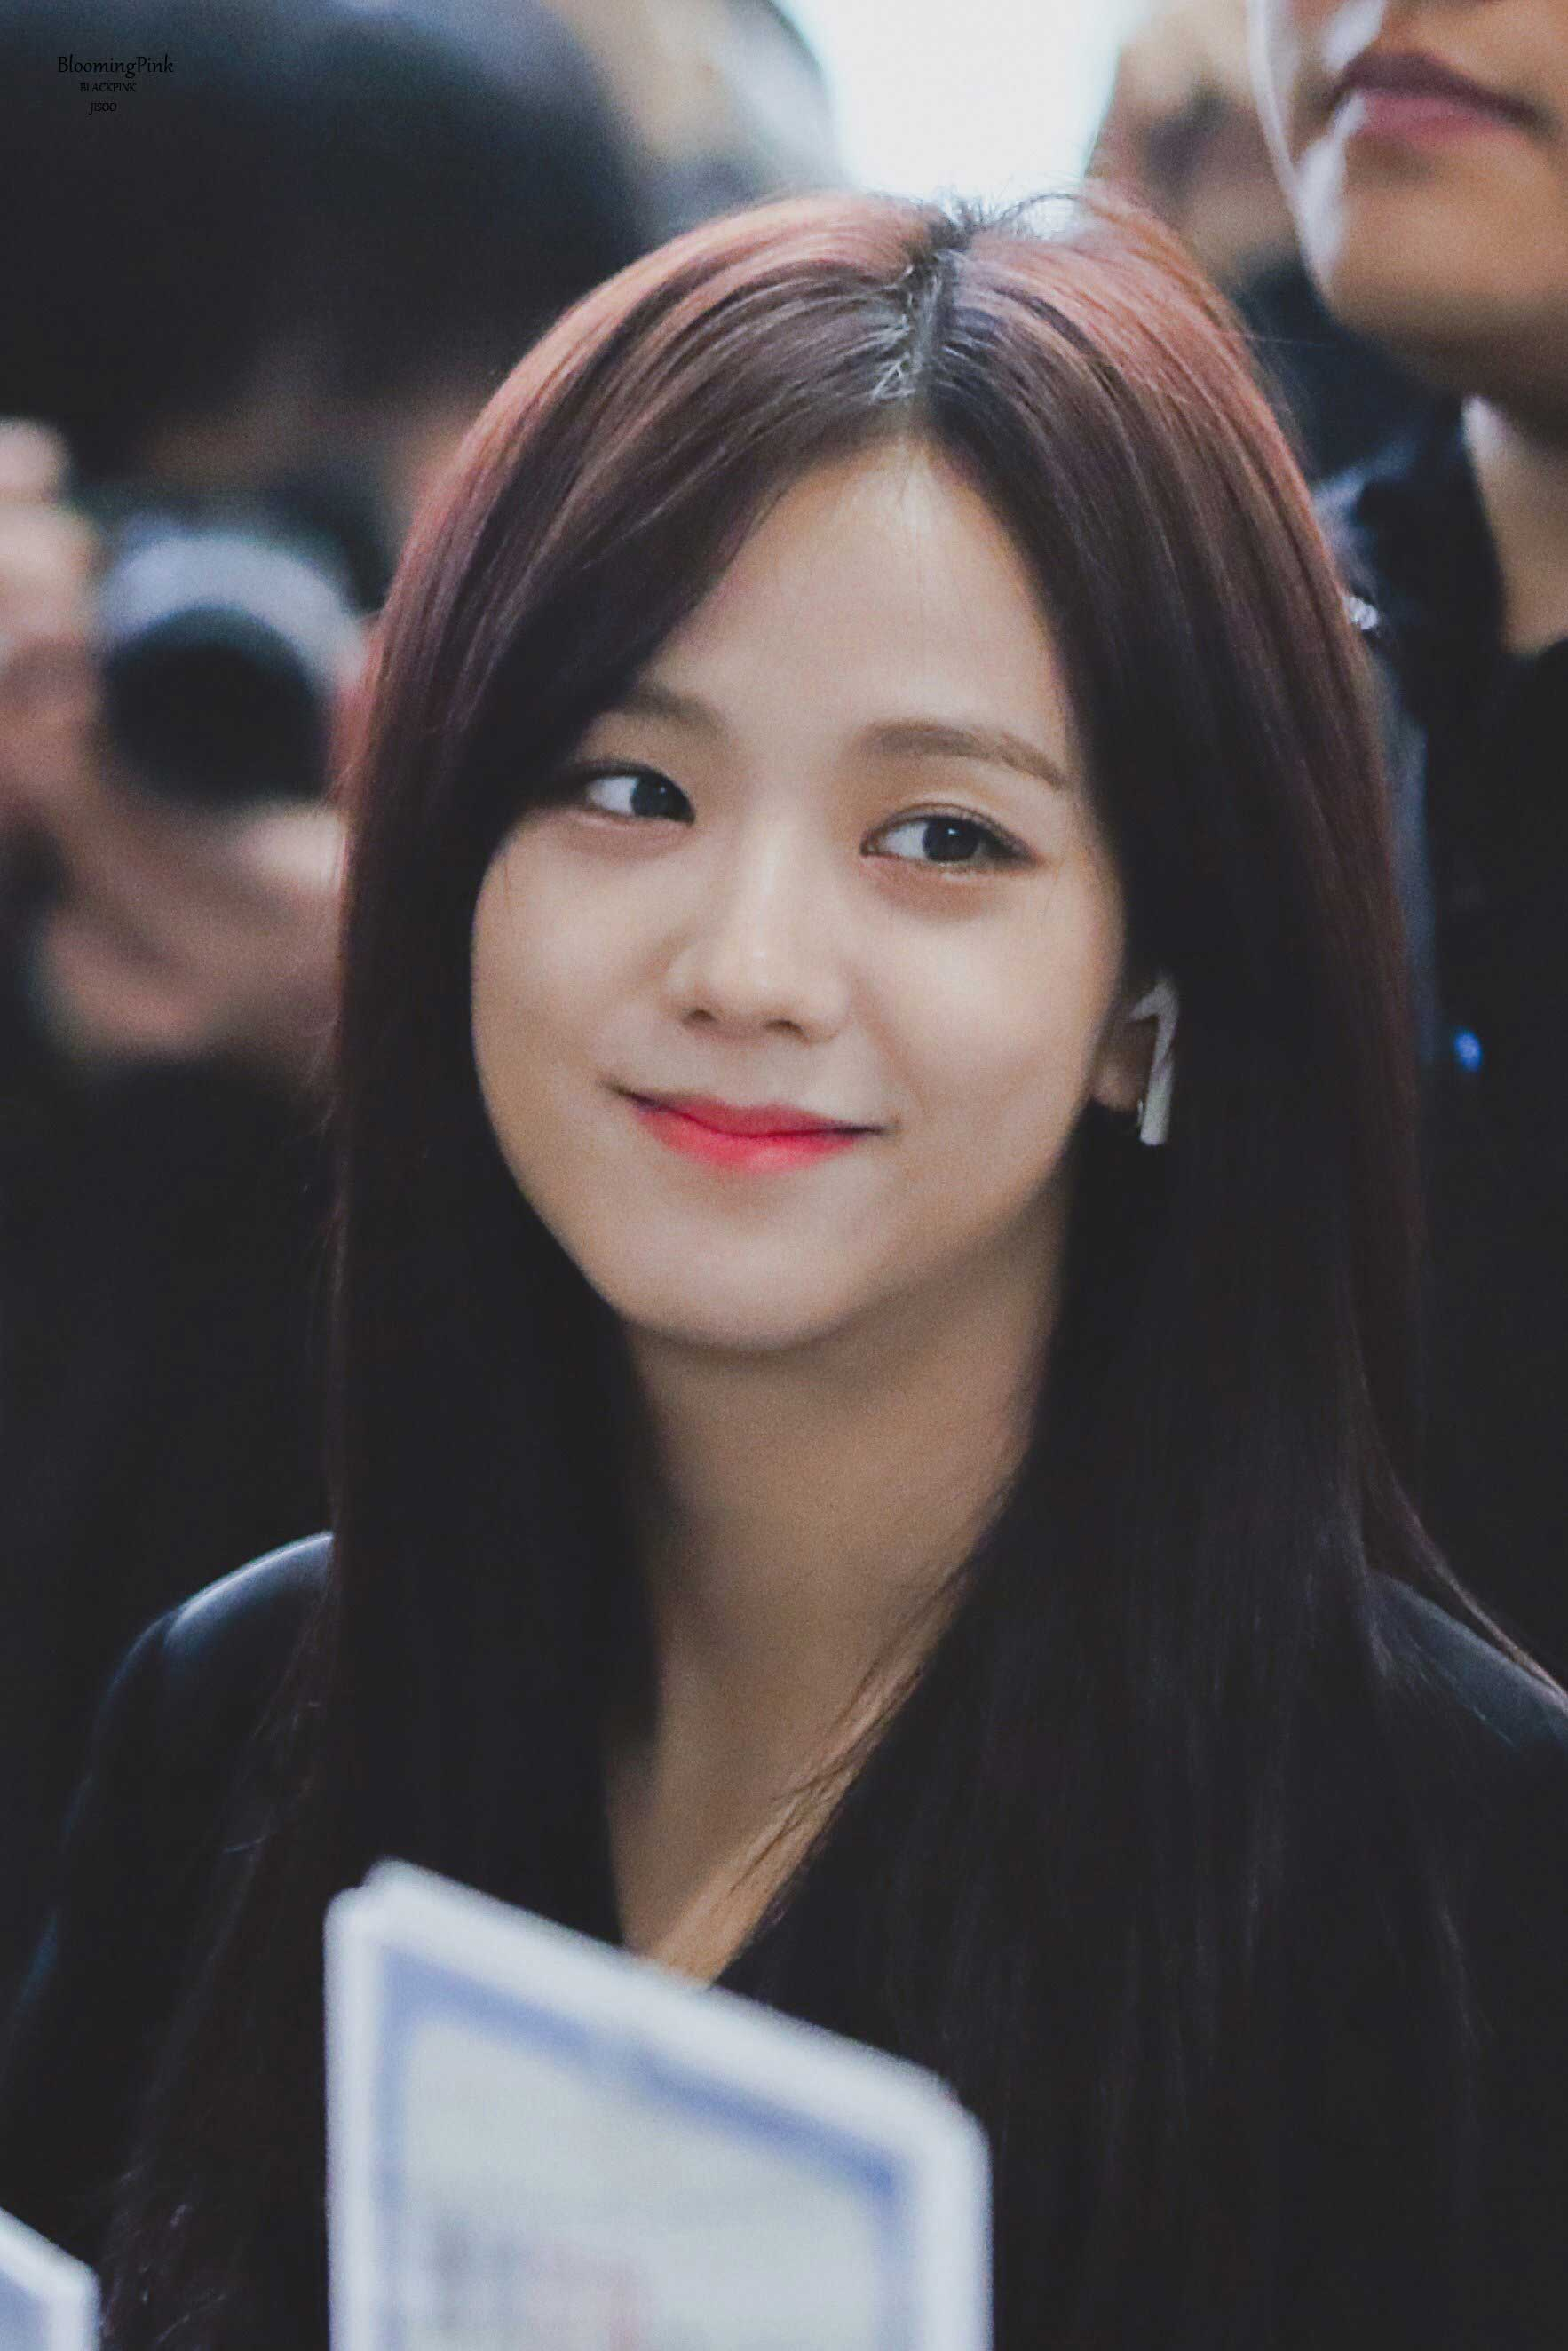 Blackpink Jisoo Airport Fashion 27 March 2018